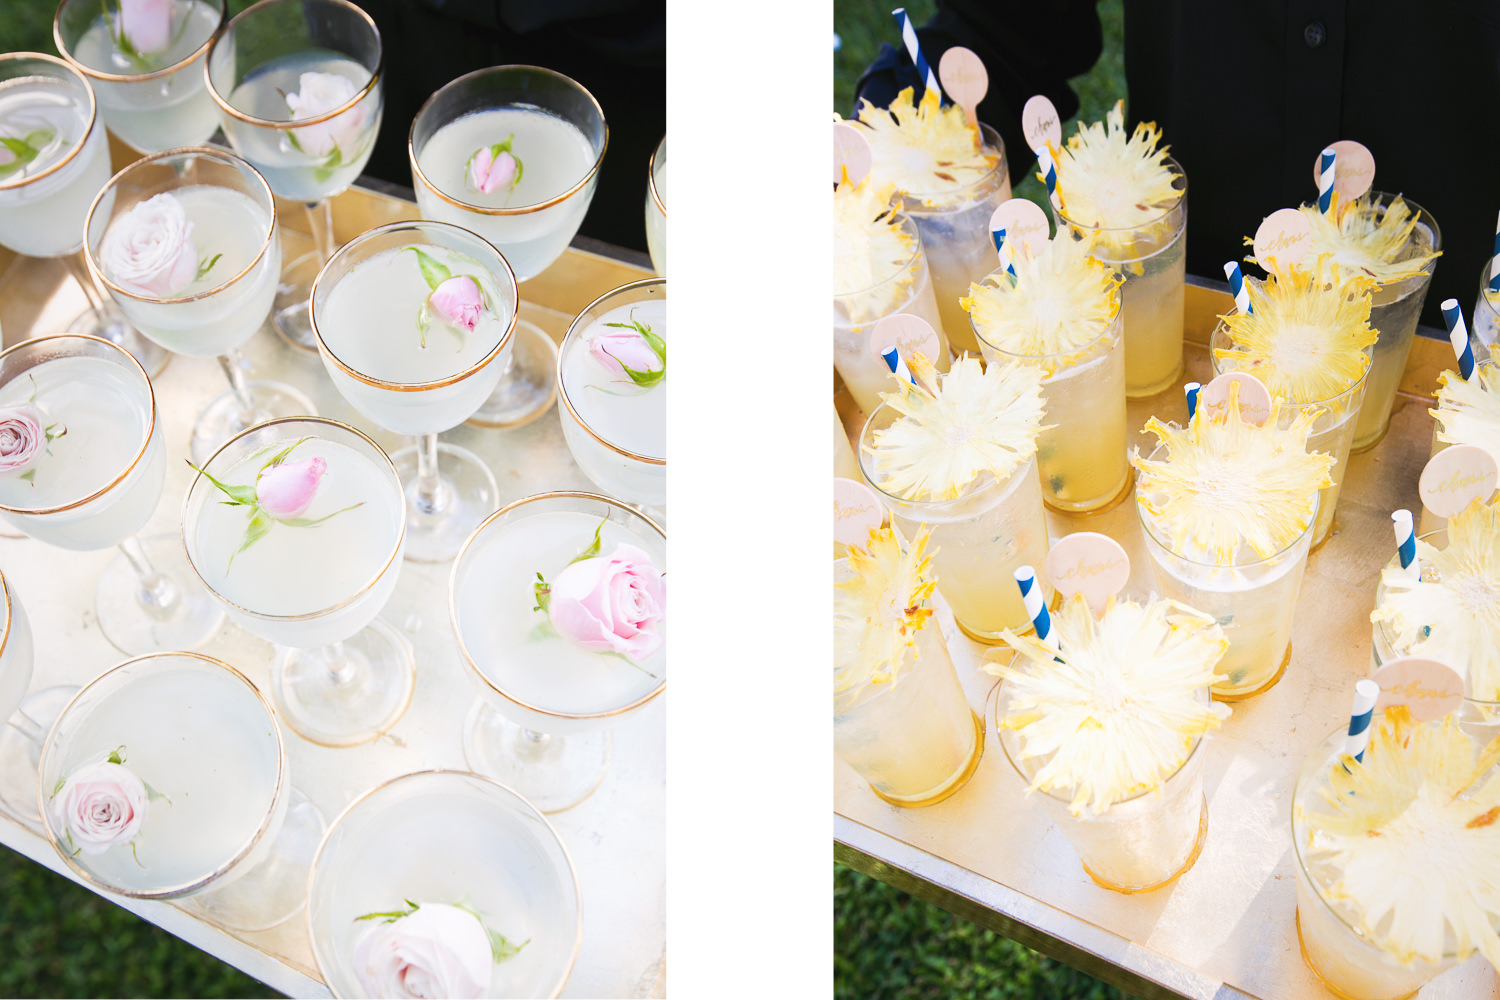 Olowalu Plantation House wedding with cocktails by Garnish Cocktail Catering